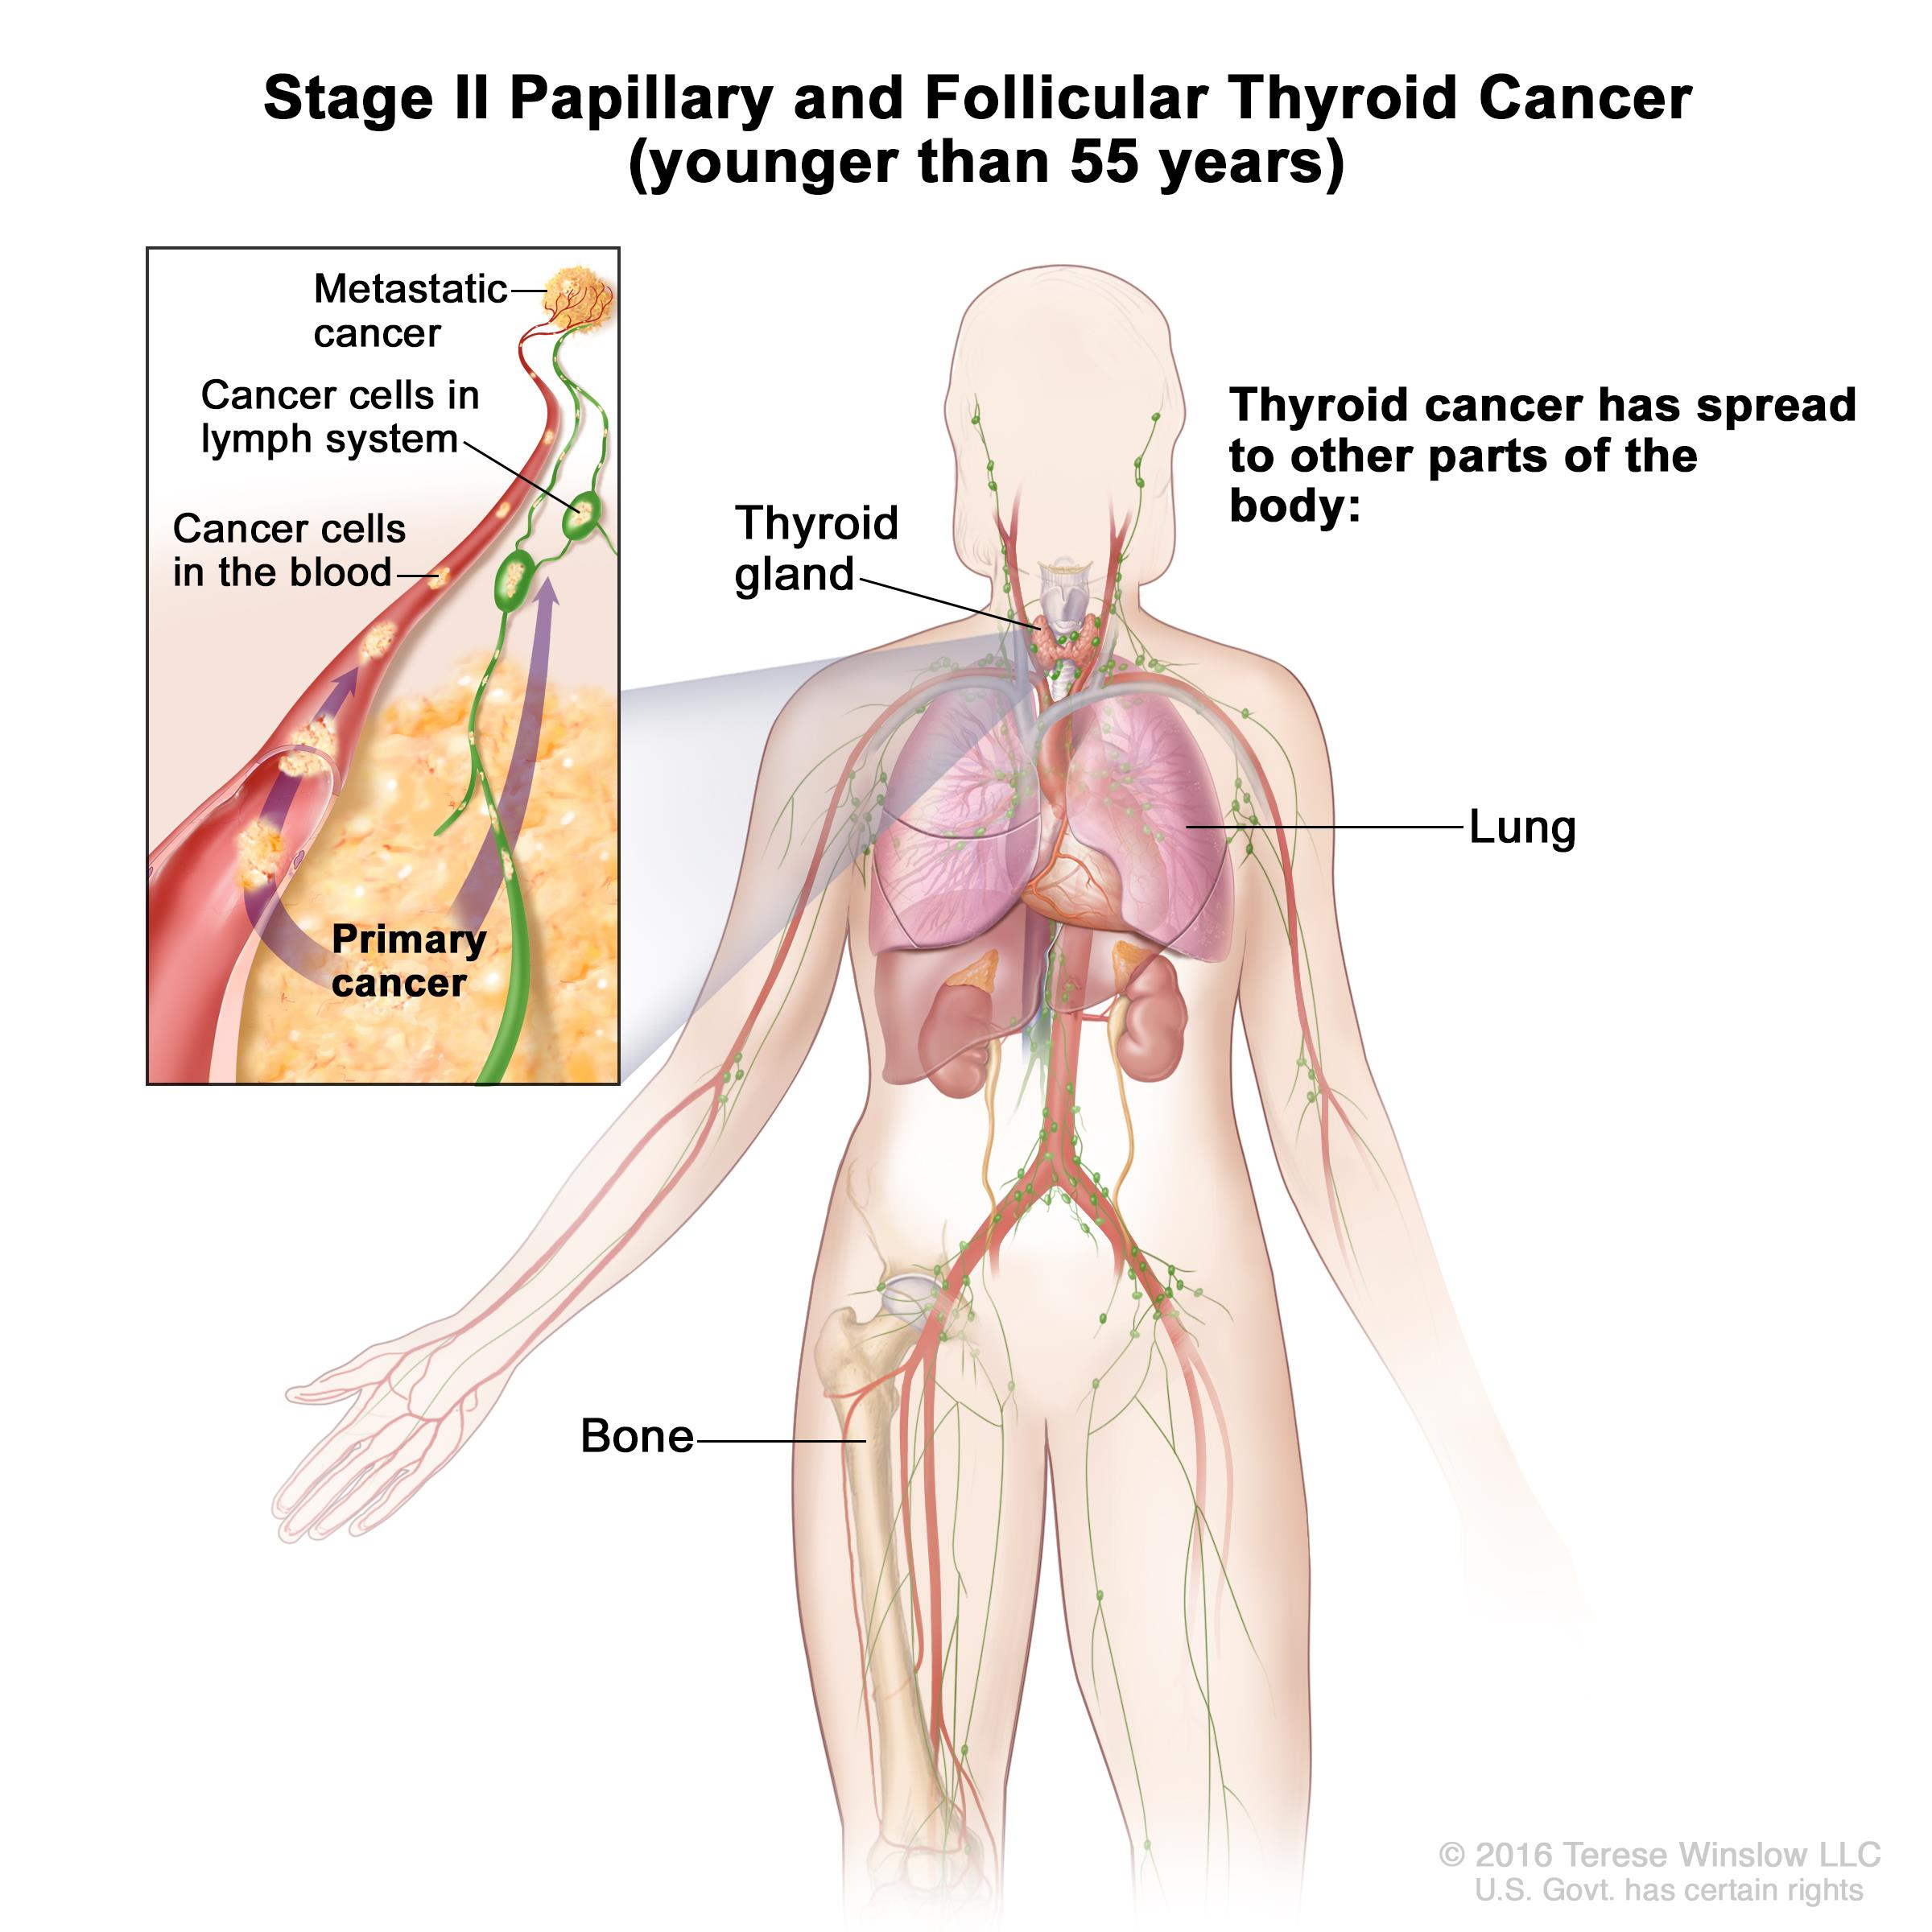 thyroid cancer treatment (pdq®)—patient version - national cancer